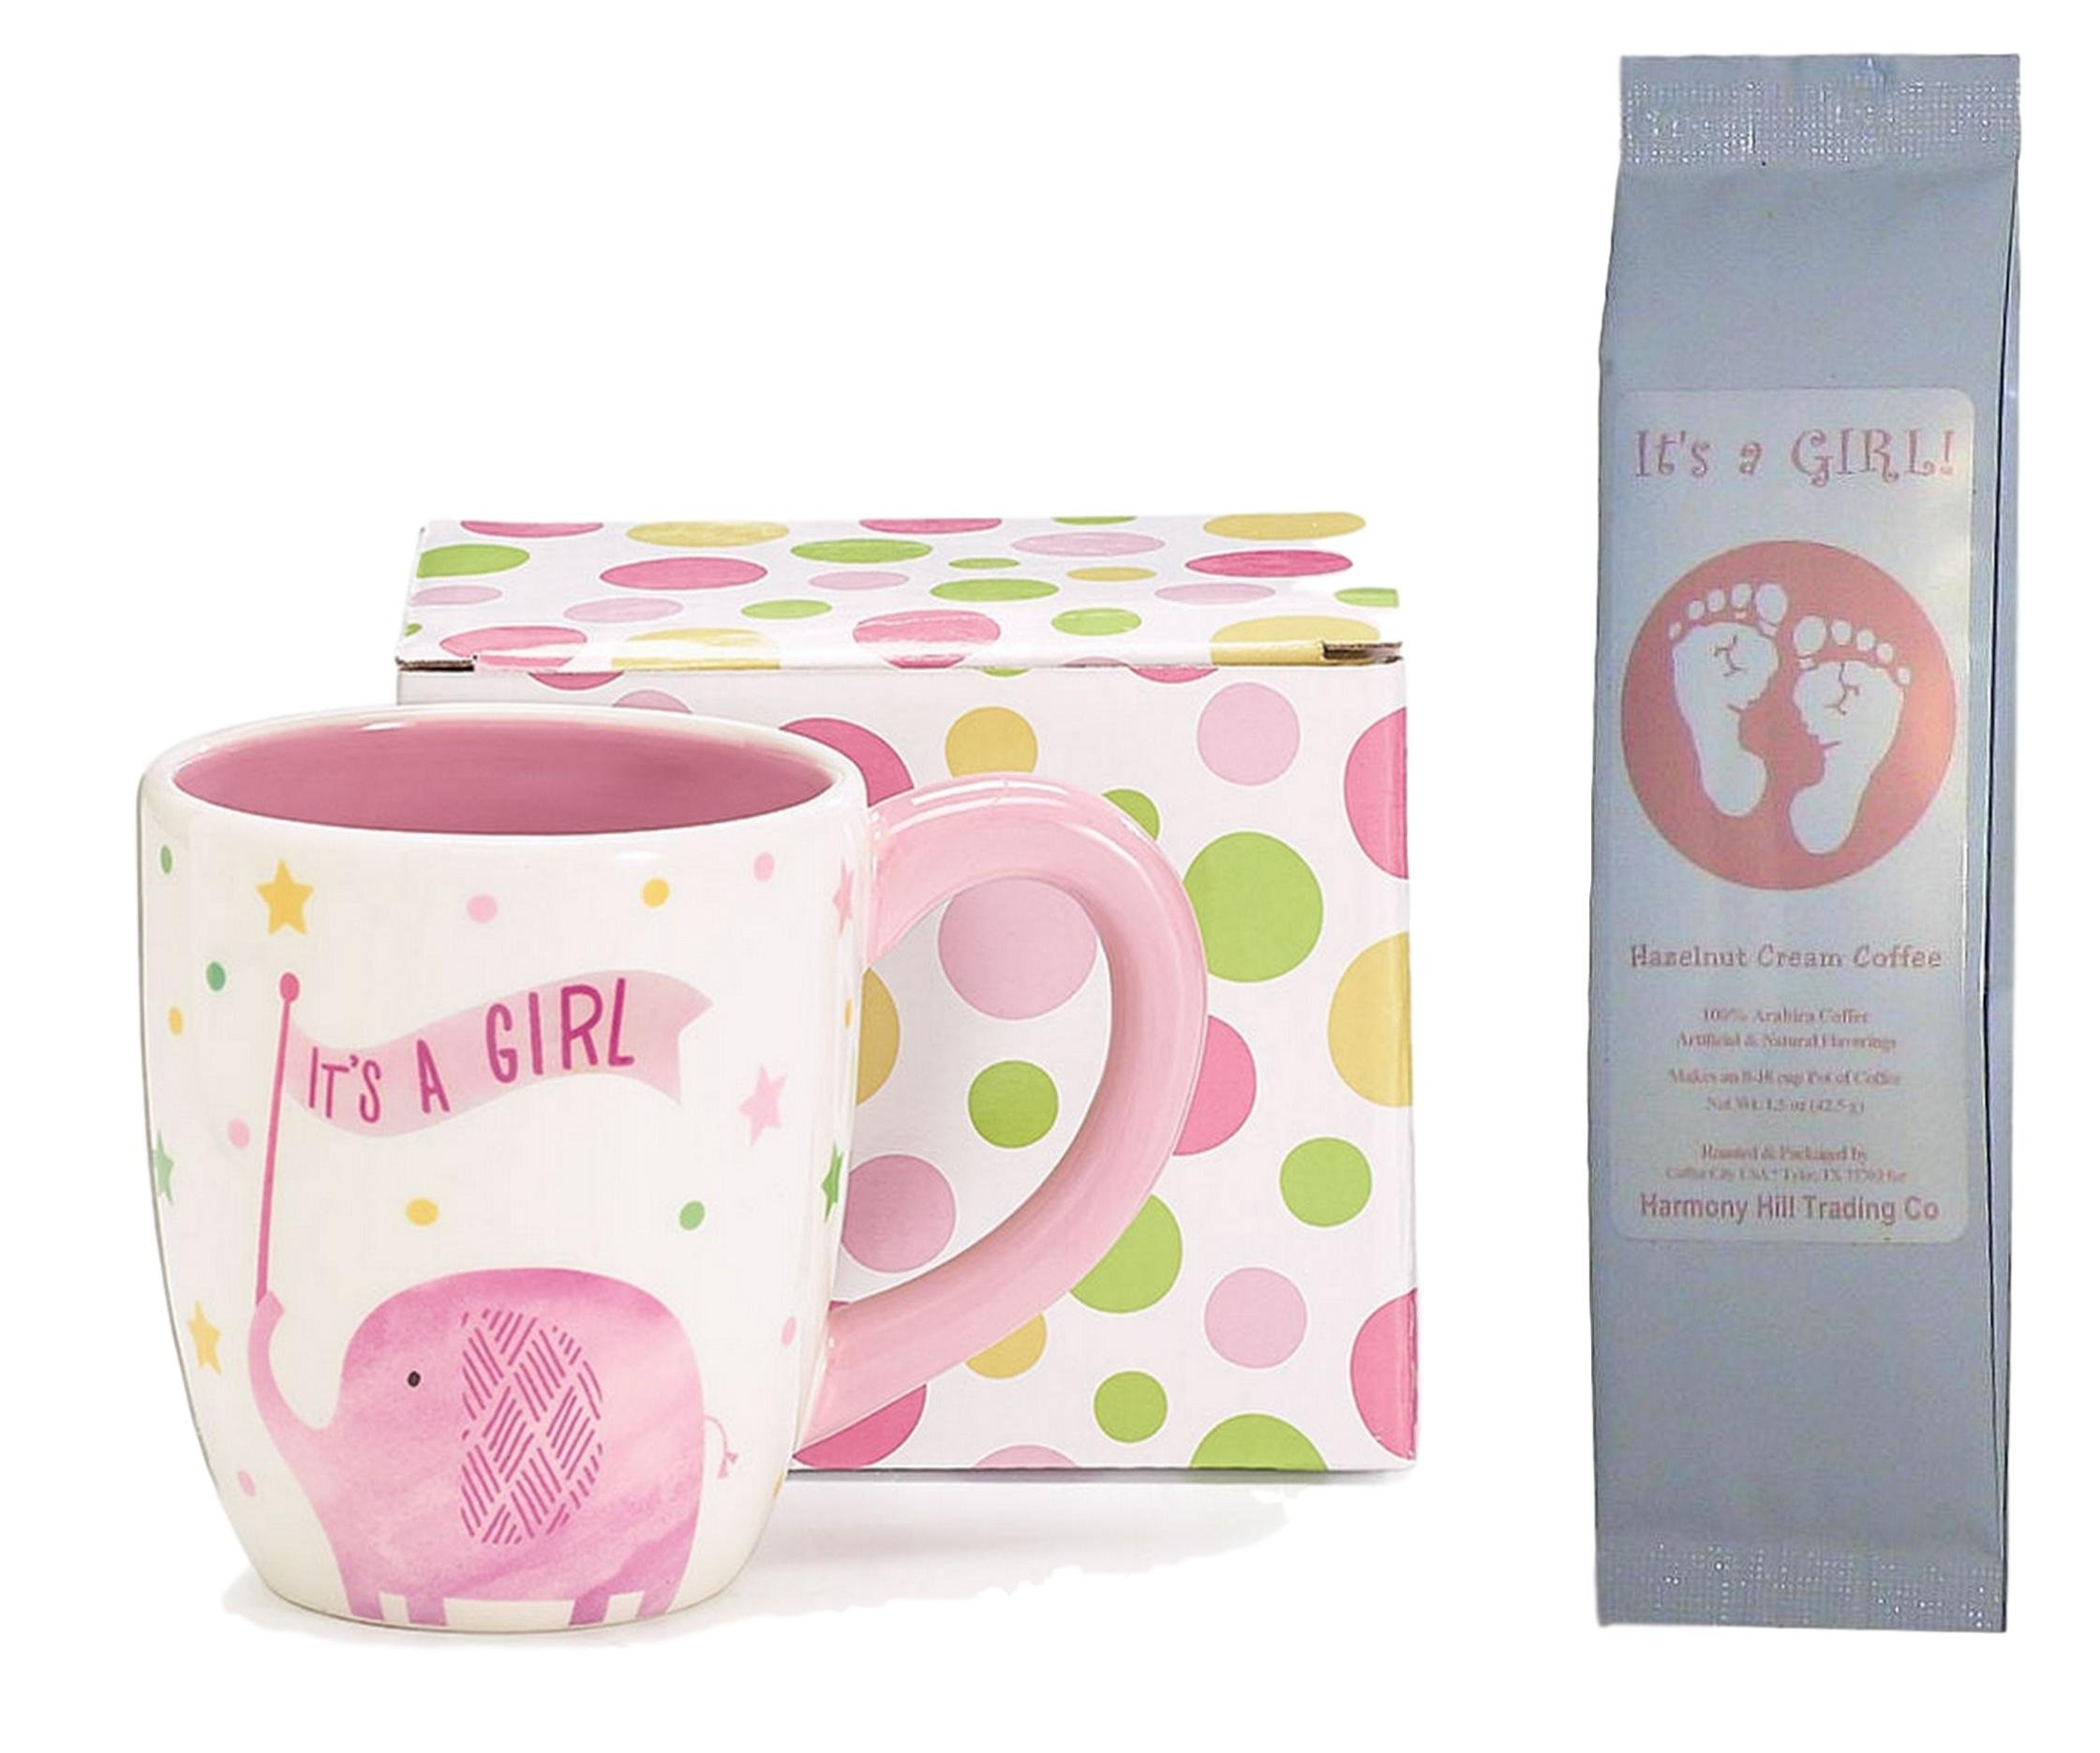 It's a Girl Coffee Mug and Coffee Gift Set - It's a Girl Polka Dots Stars Elephant Mug and It's a Girl Footprints Hazelnut Cream Coffee New Baby 2 Item Bundle